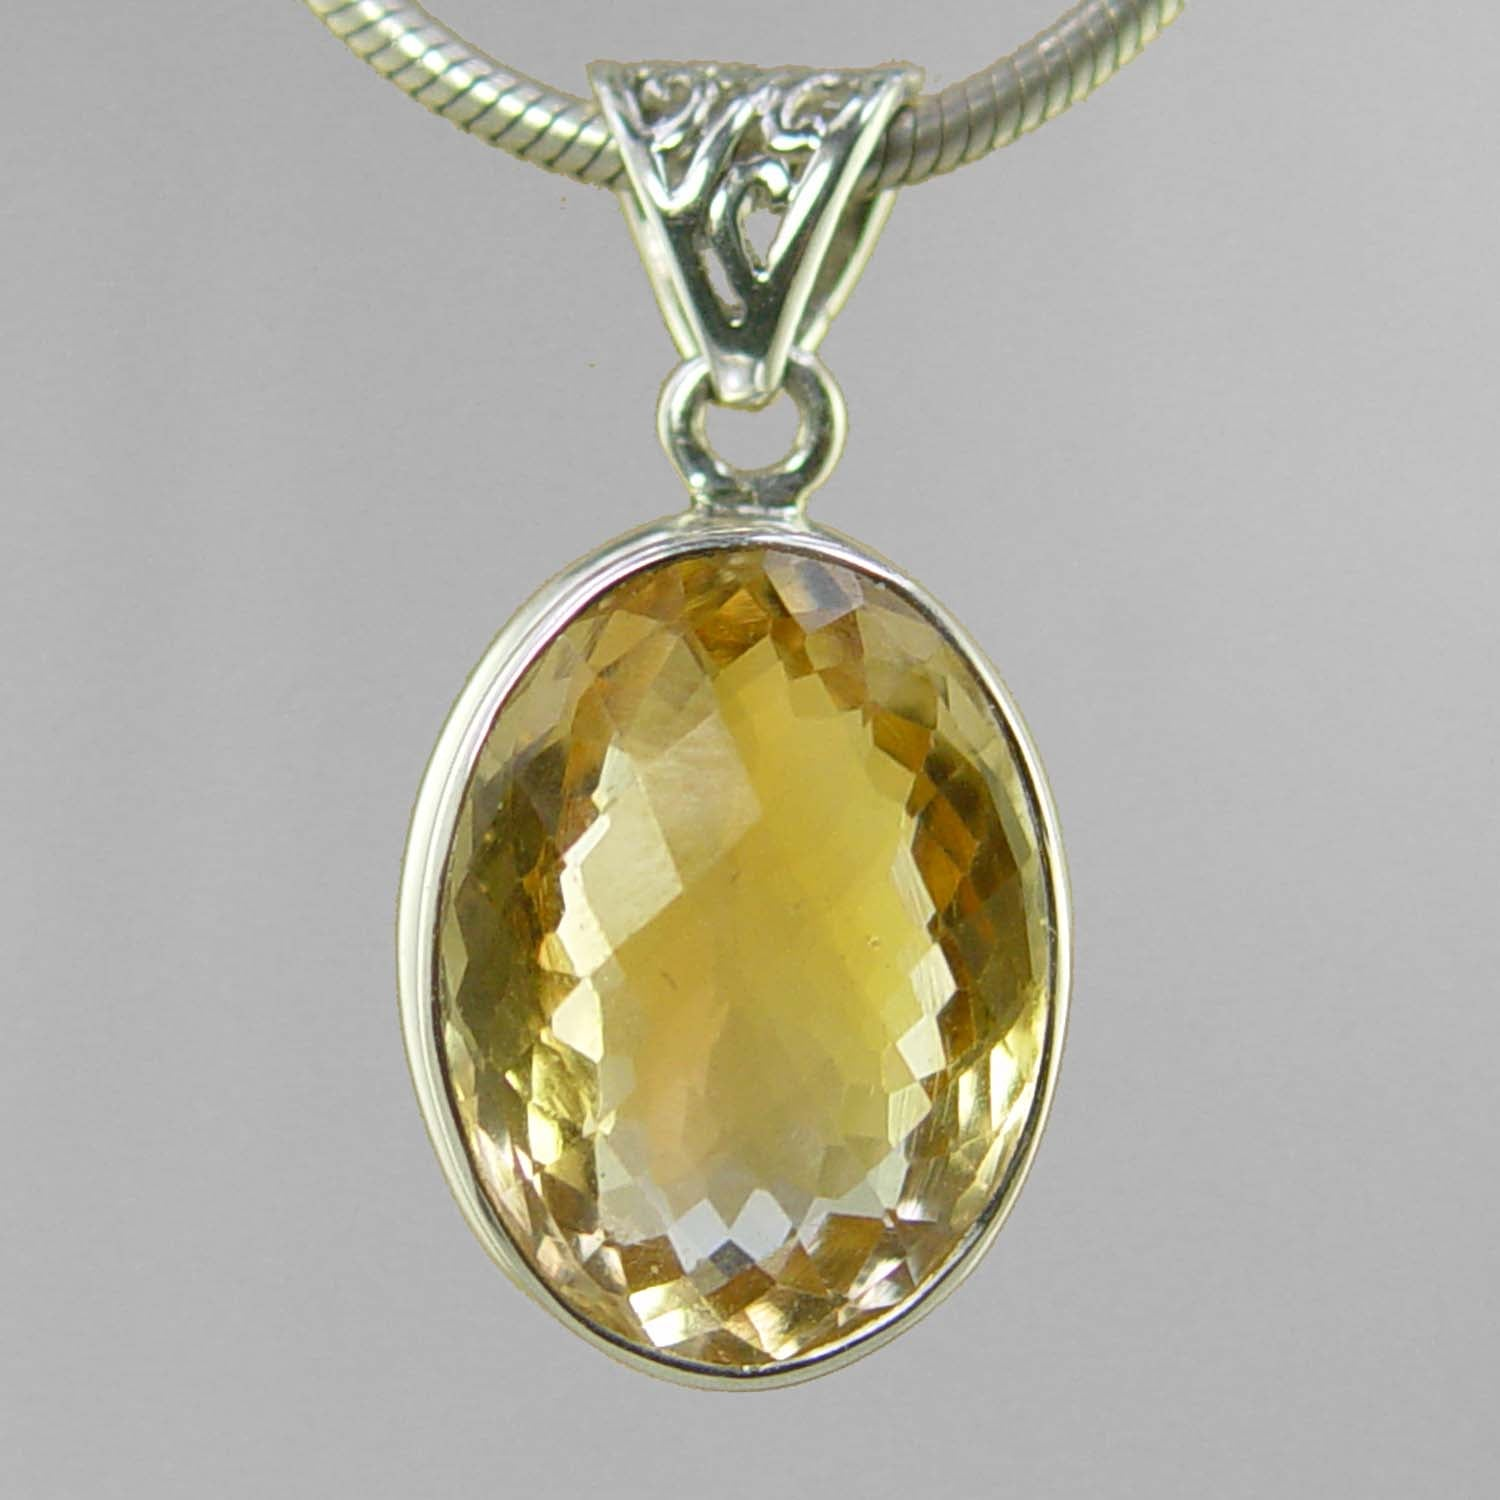 Citrine 12 ct Oval Bezel Set Sterling Silver Pendant